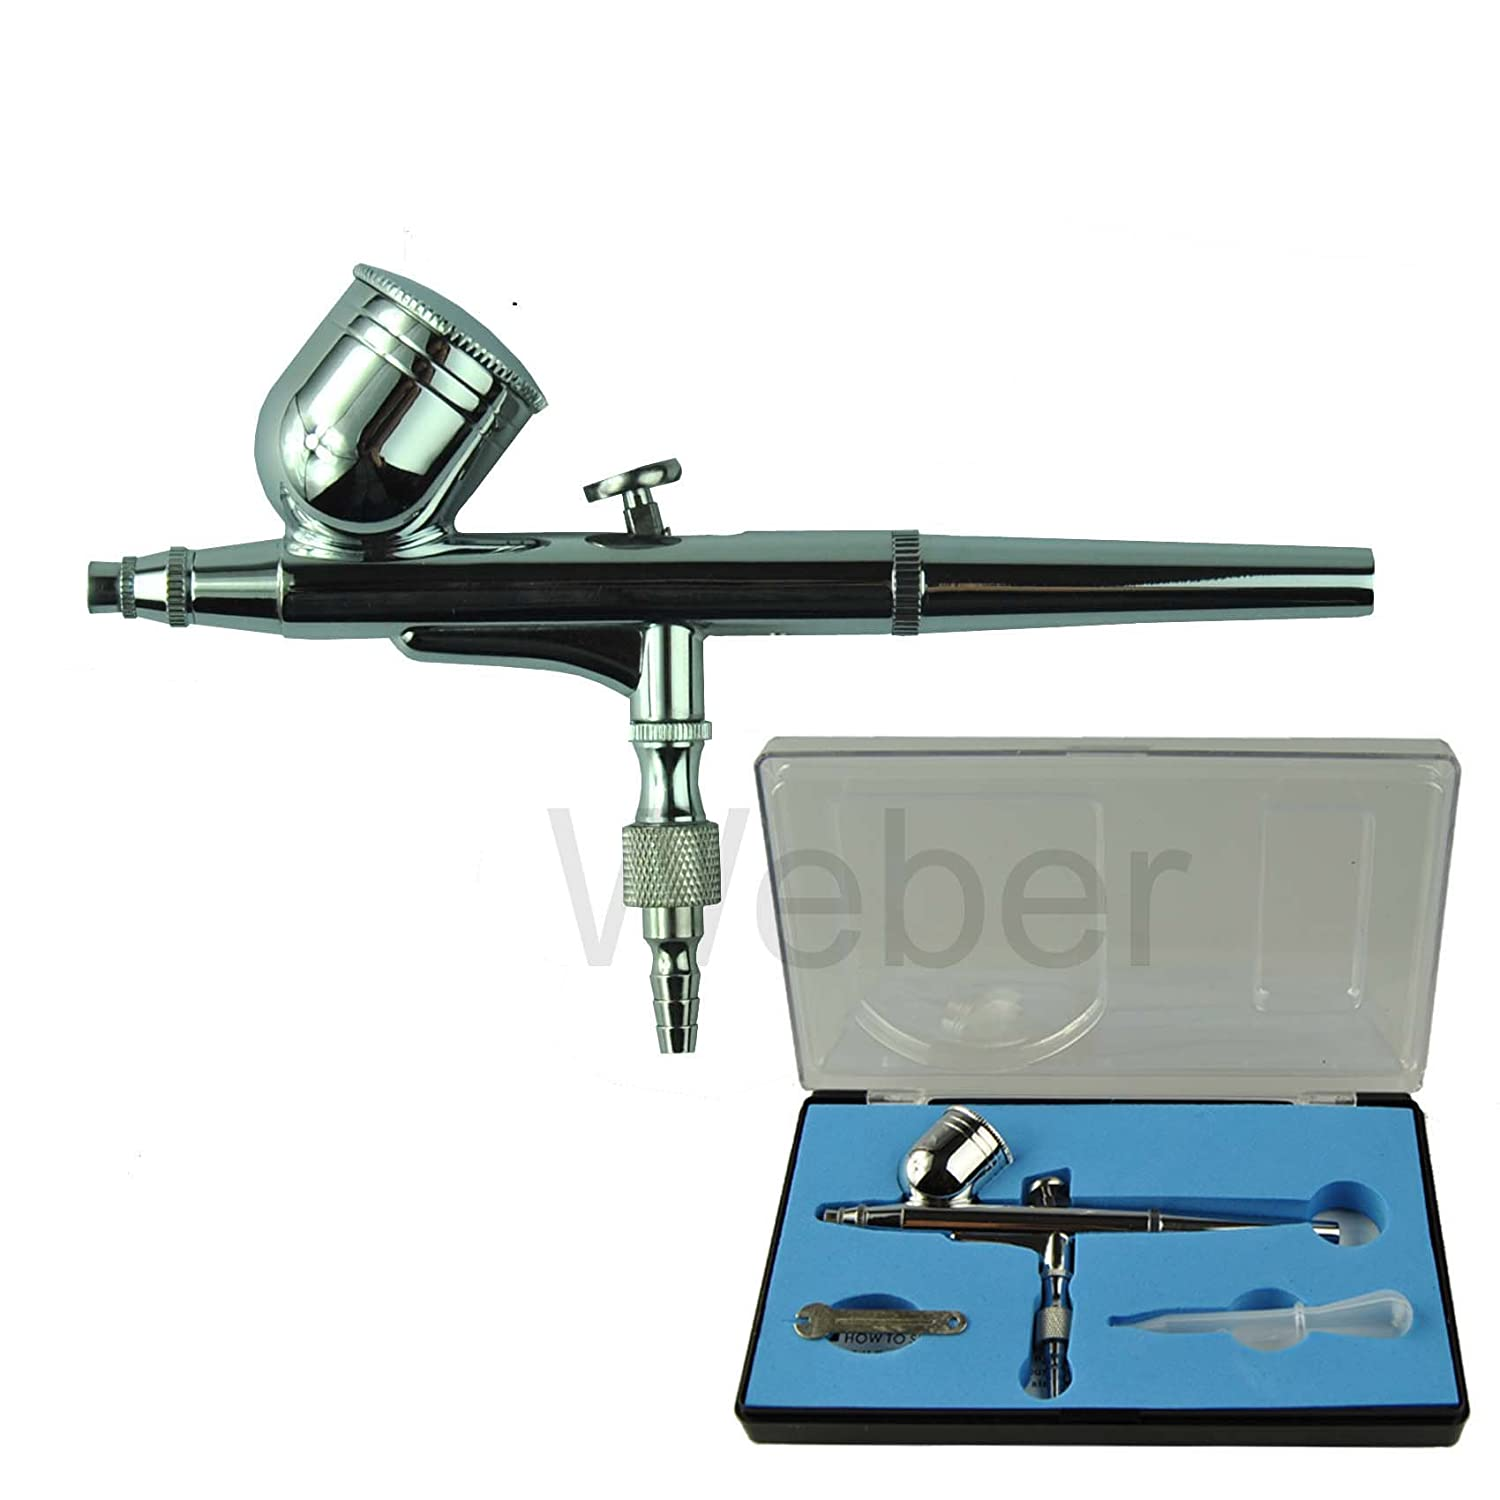 New Pro Gravity Feed Dual-Action Air Brush Airbrush Set For Art Tattoo Nail. 7 cc cup. Nozzle 0.3 mm. Weberdisplays